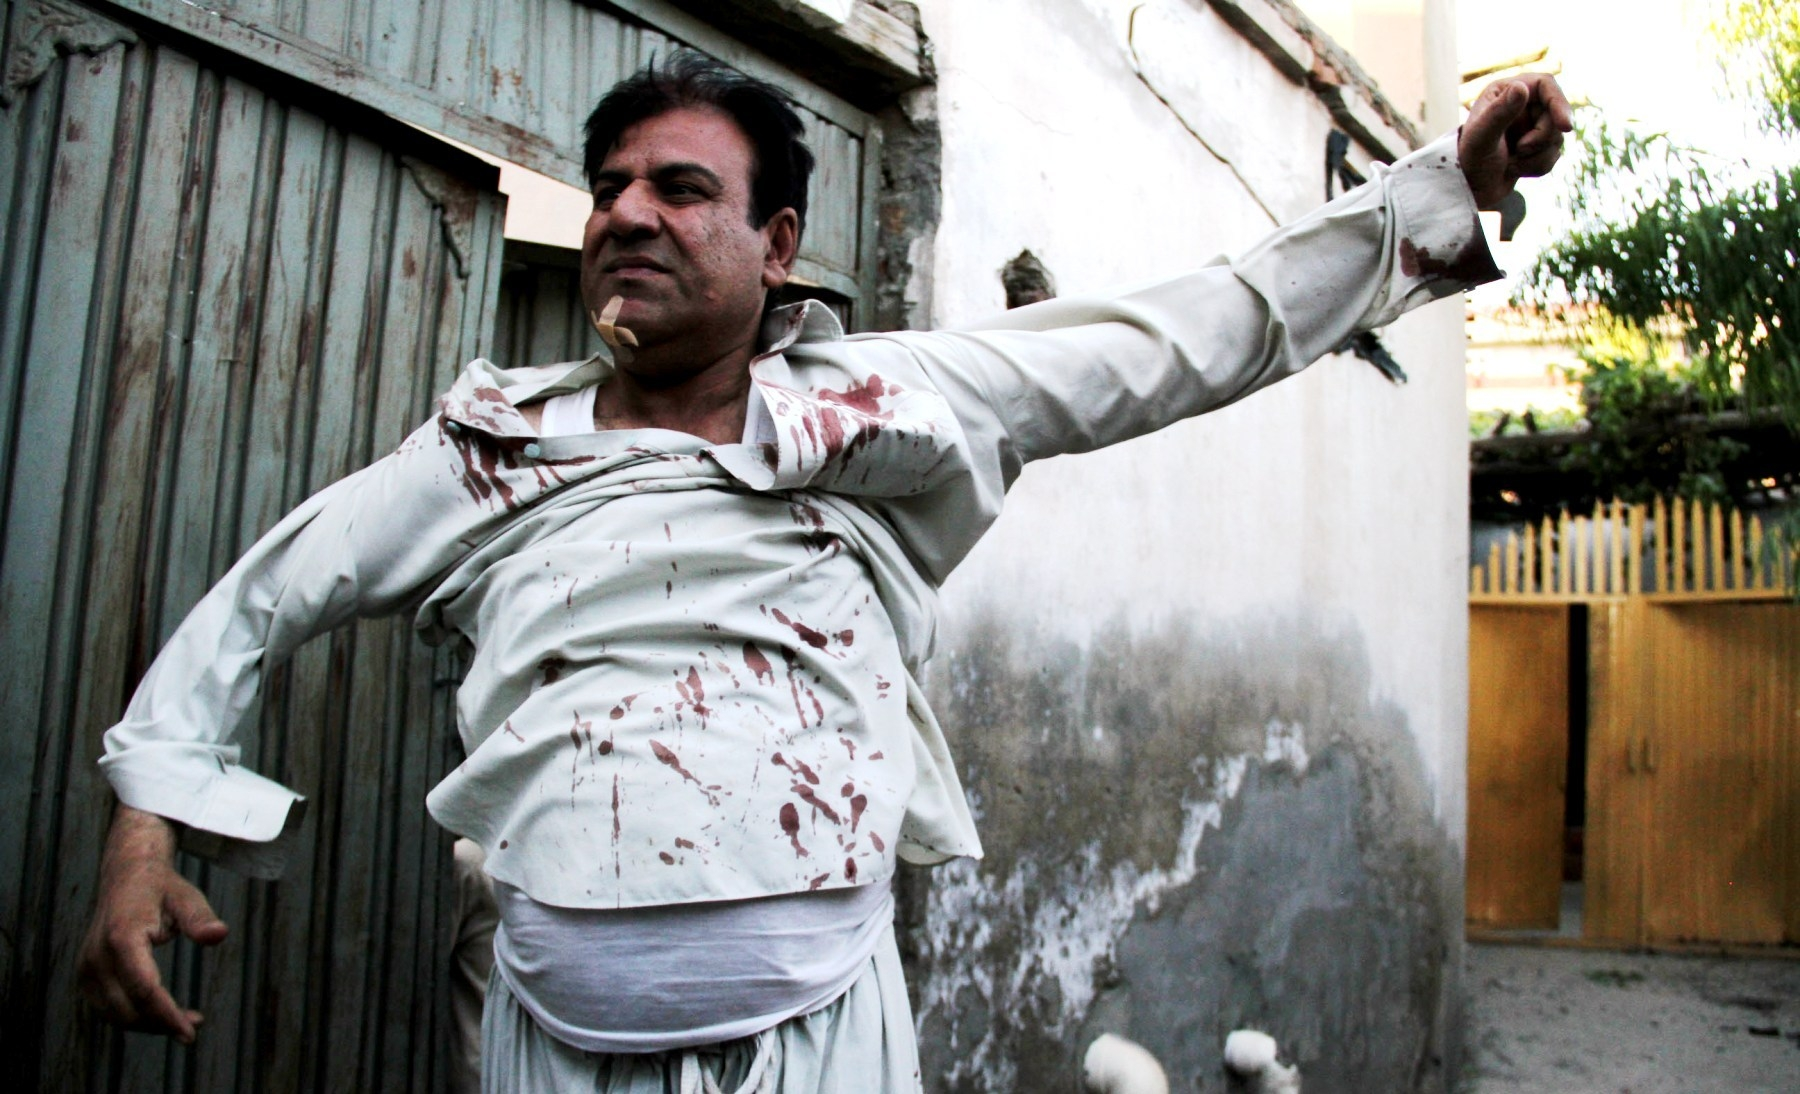 JALALABAD, June 1, 2015 (Xinhua) -- An injured man stands at the site of attack in Jalalabad city, capital of eastern Afghan province of Nangarhar, June 1, 2015. Five militants were killed in a six-hour-seige on a police station in Jalalabad city, capital of eastern Afghan province of Nangarhar by Taliban overnight Sunday, police said on Monday. (Xinhua/Sapay/IANS)